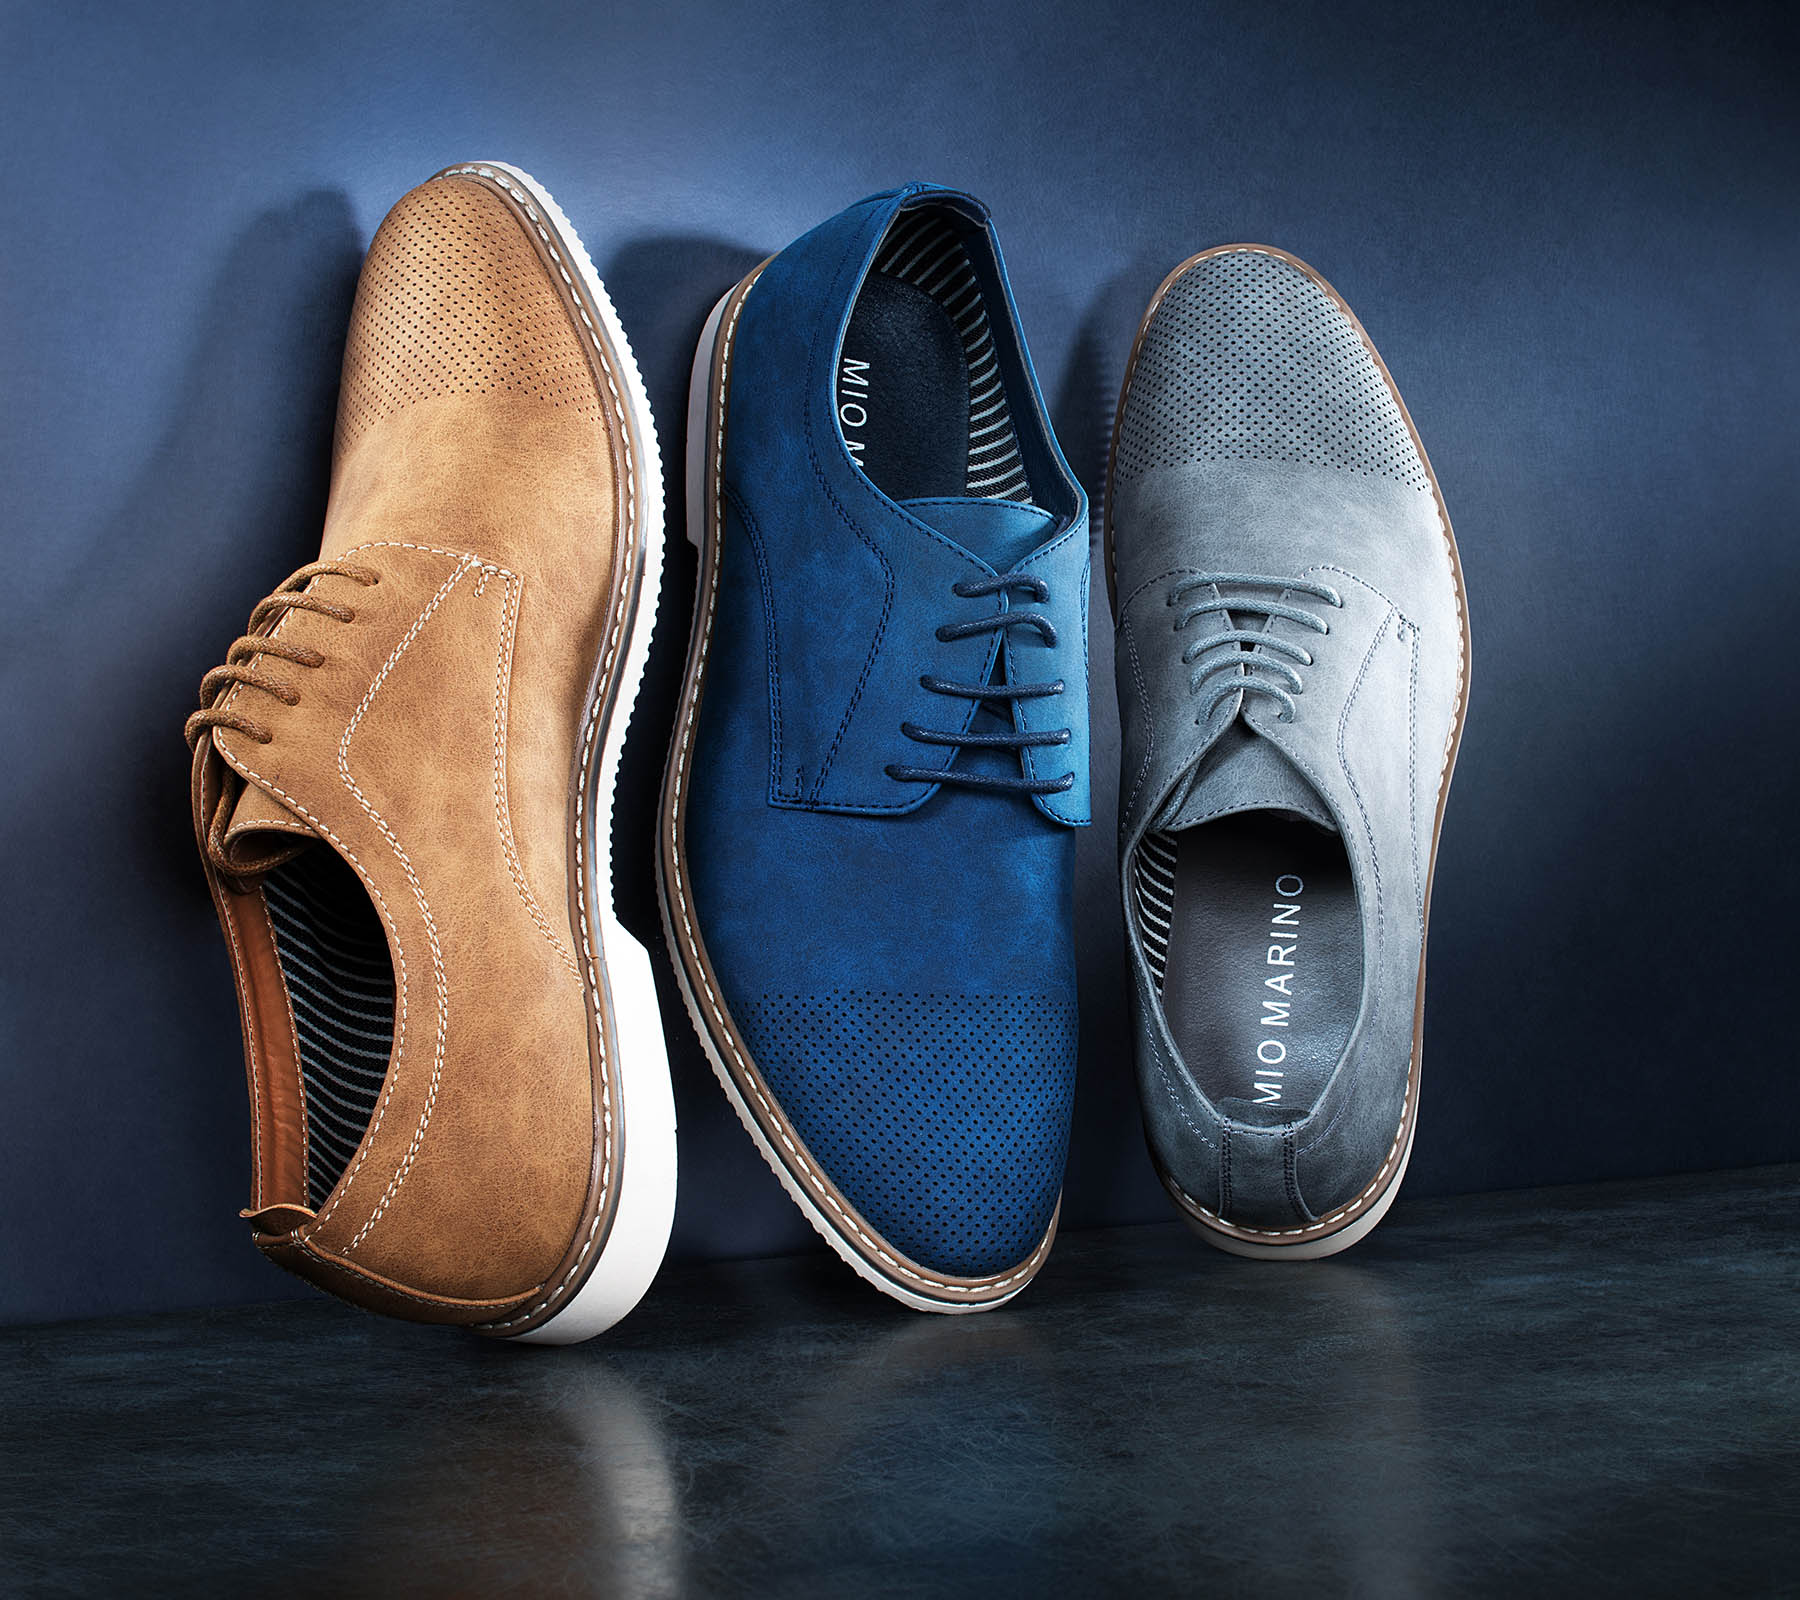 New-york-mens-fashion-luxury-still-life-suede-shoes